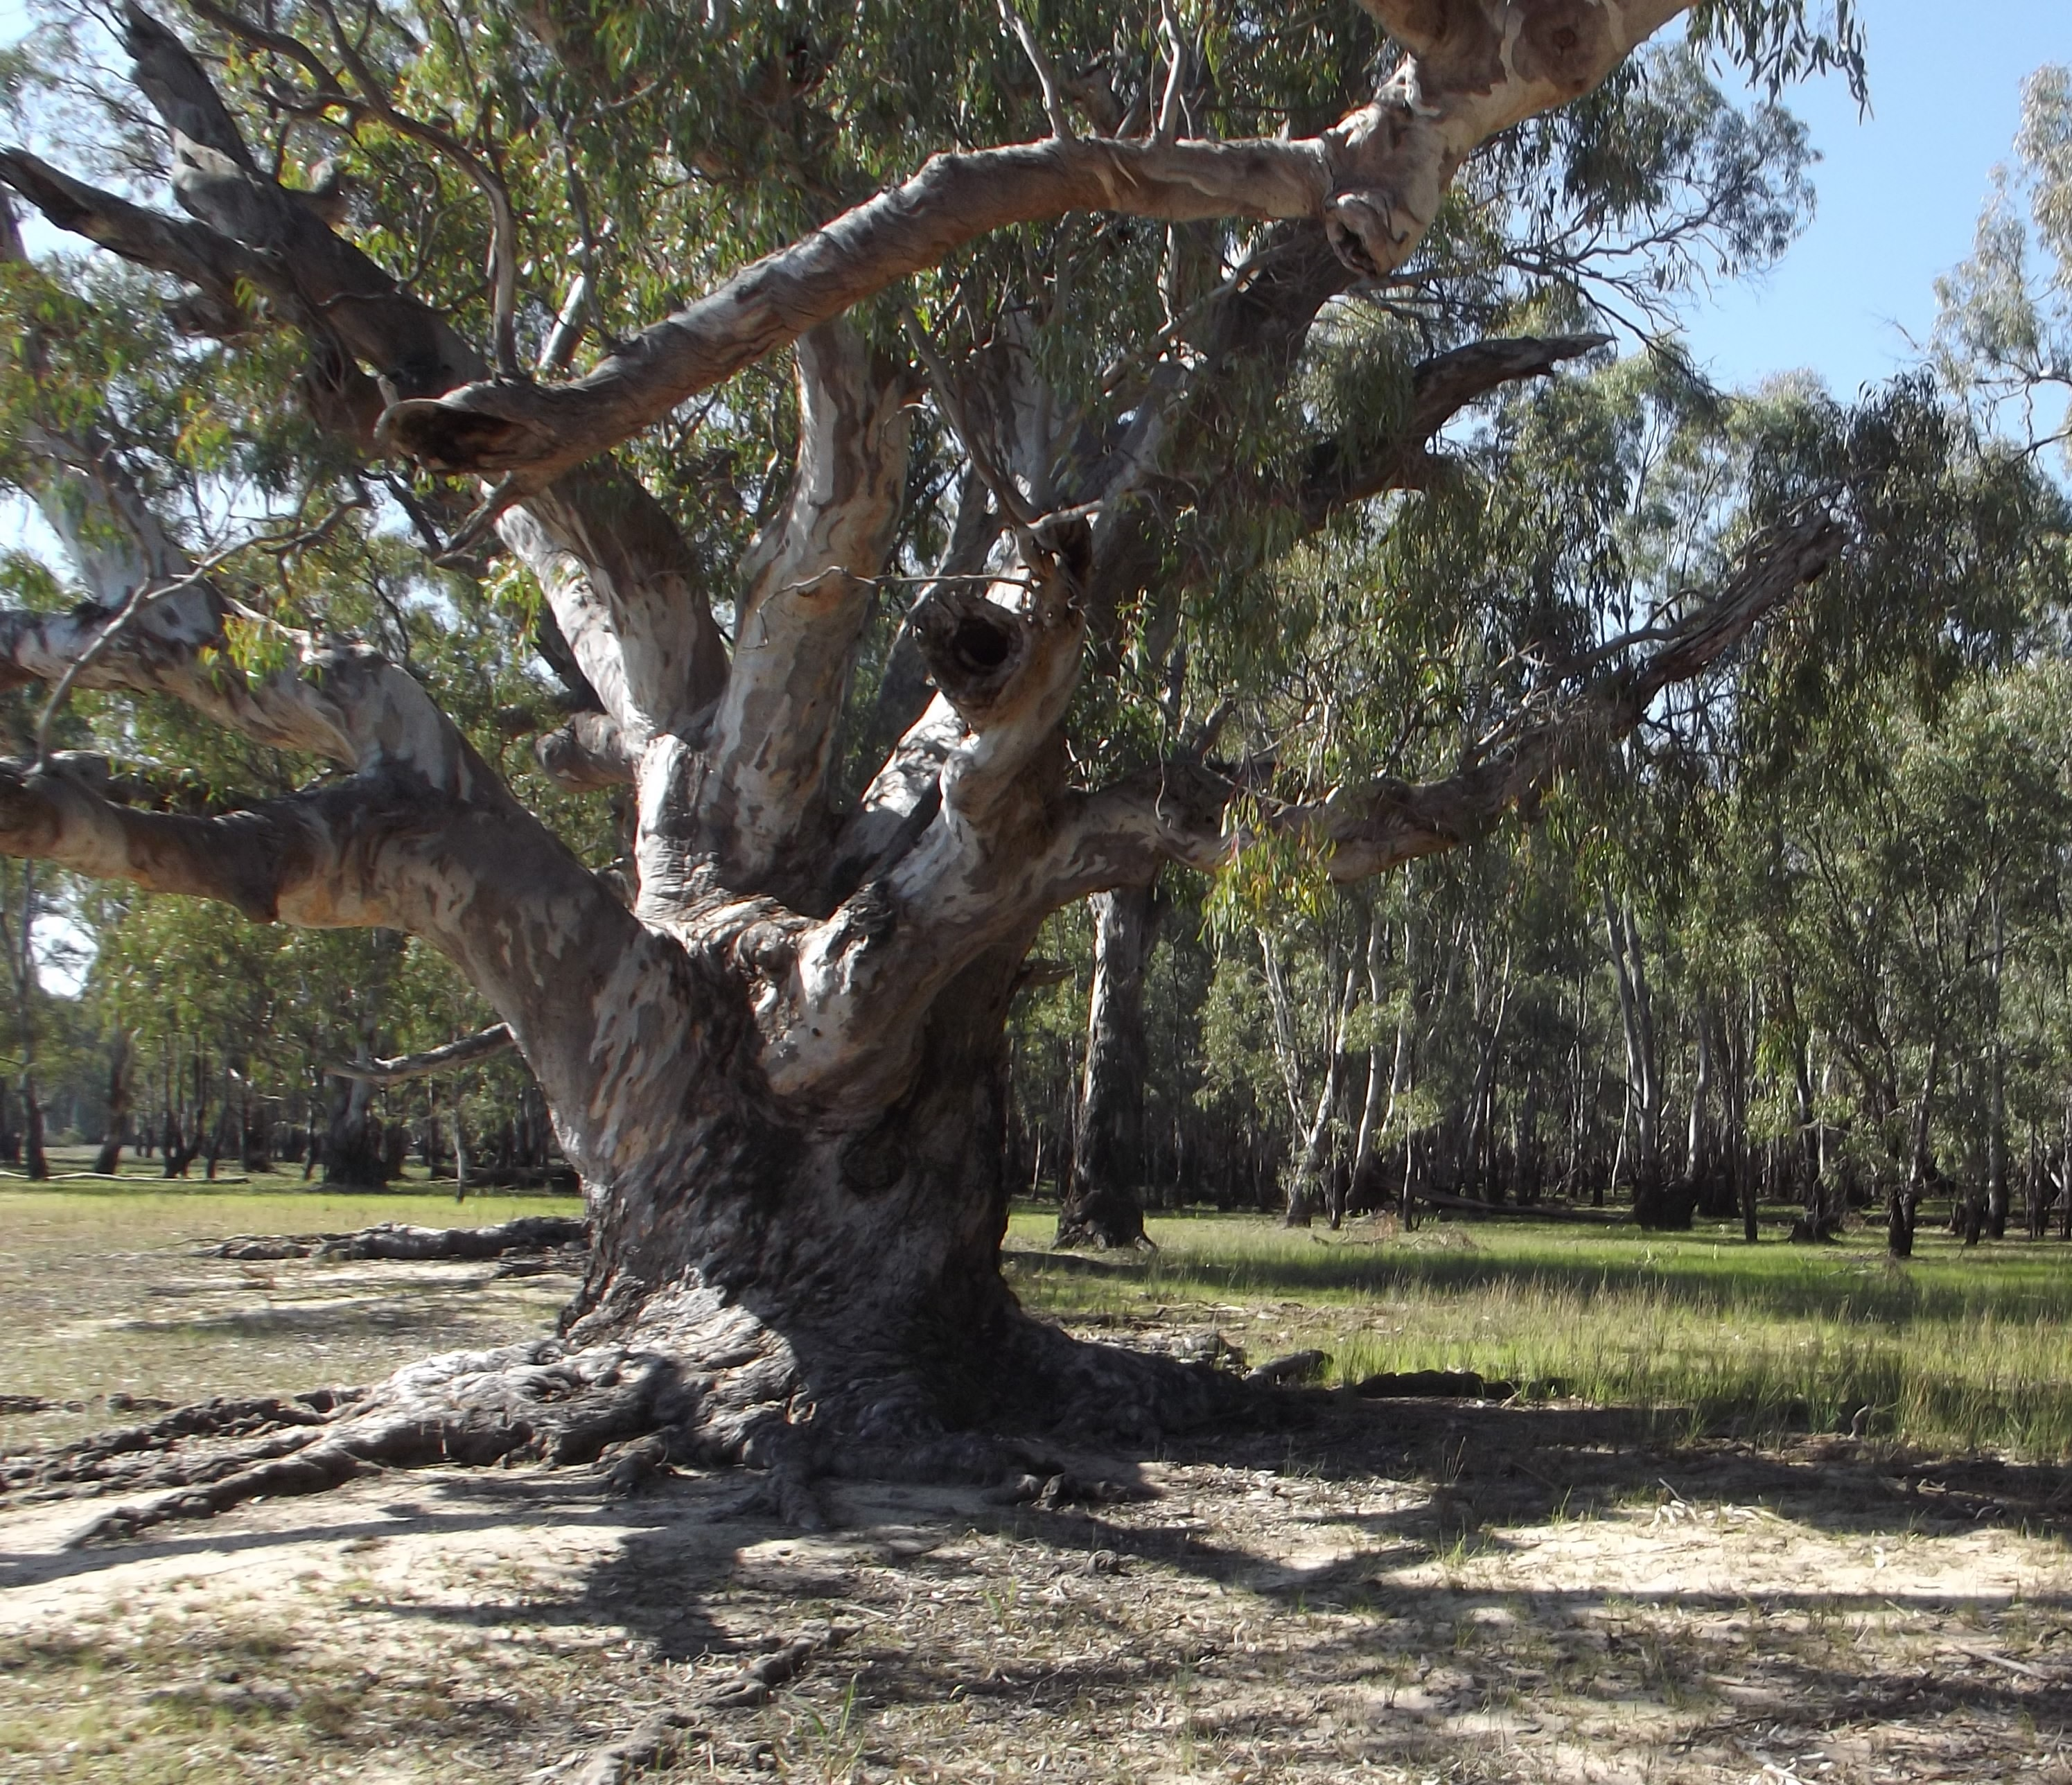 Three Sisters: An ancient river gum stands tall between two totems at the Barmah National Park, home to the world's largest river red gum forest.